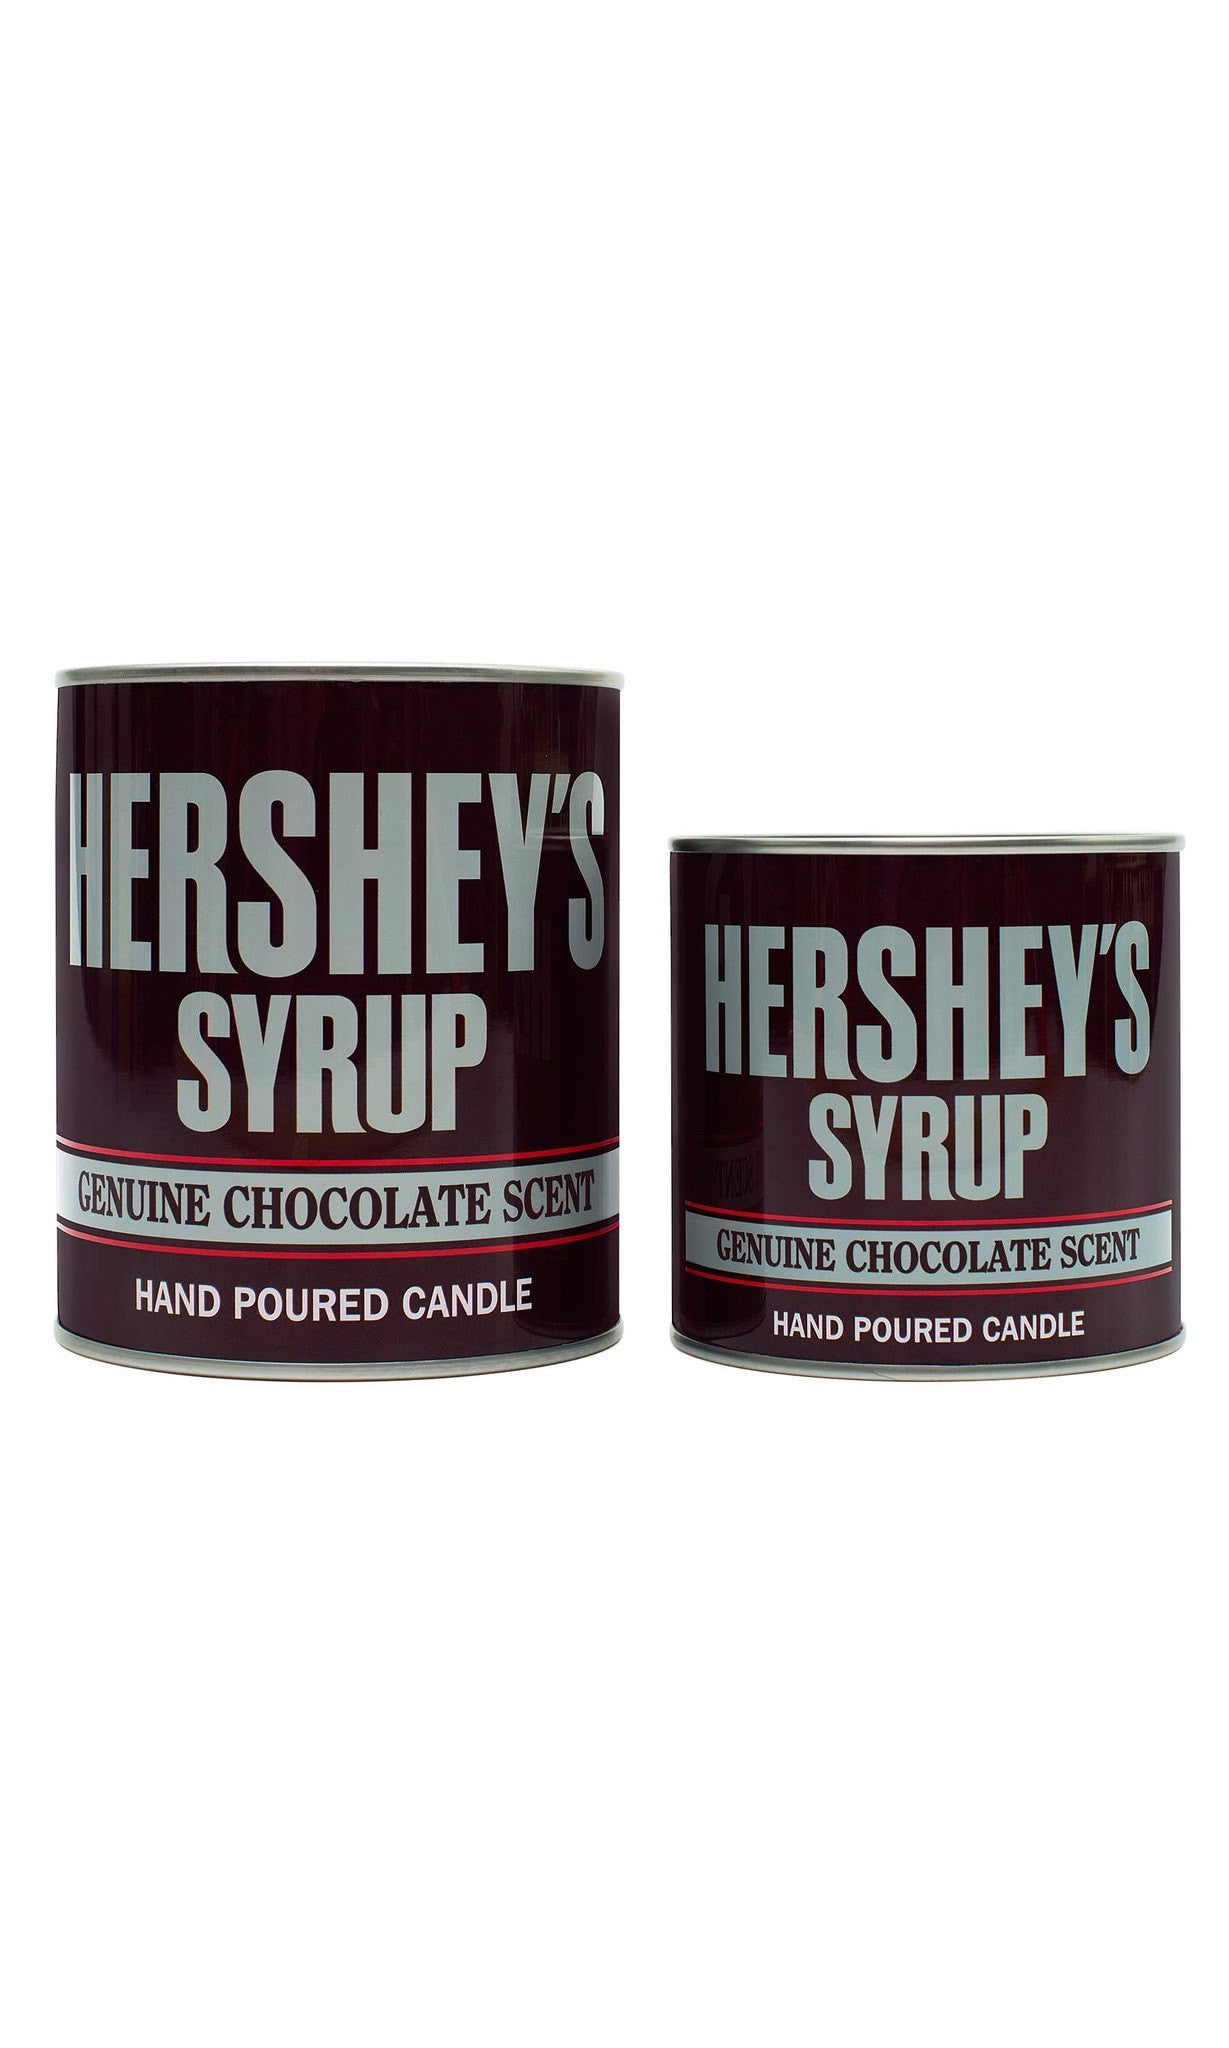 HERSHEY'S Chocolate Syrup Large Collectible Tin Candle - Candlemart.com - 3